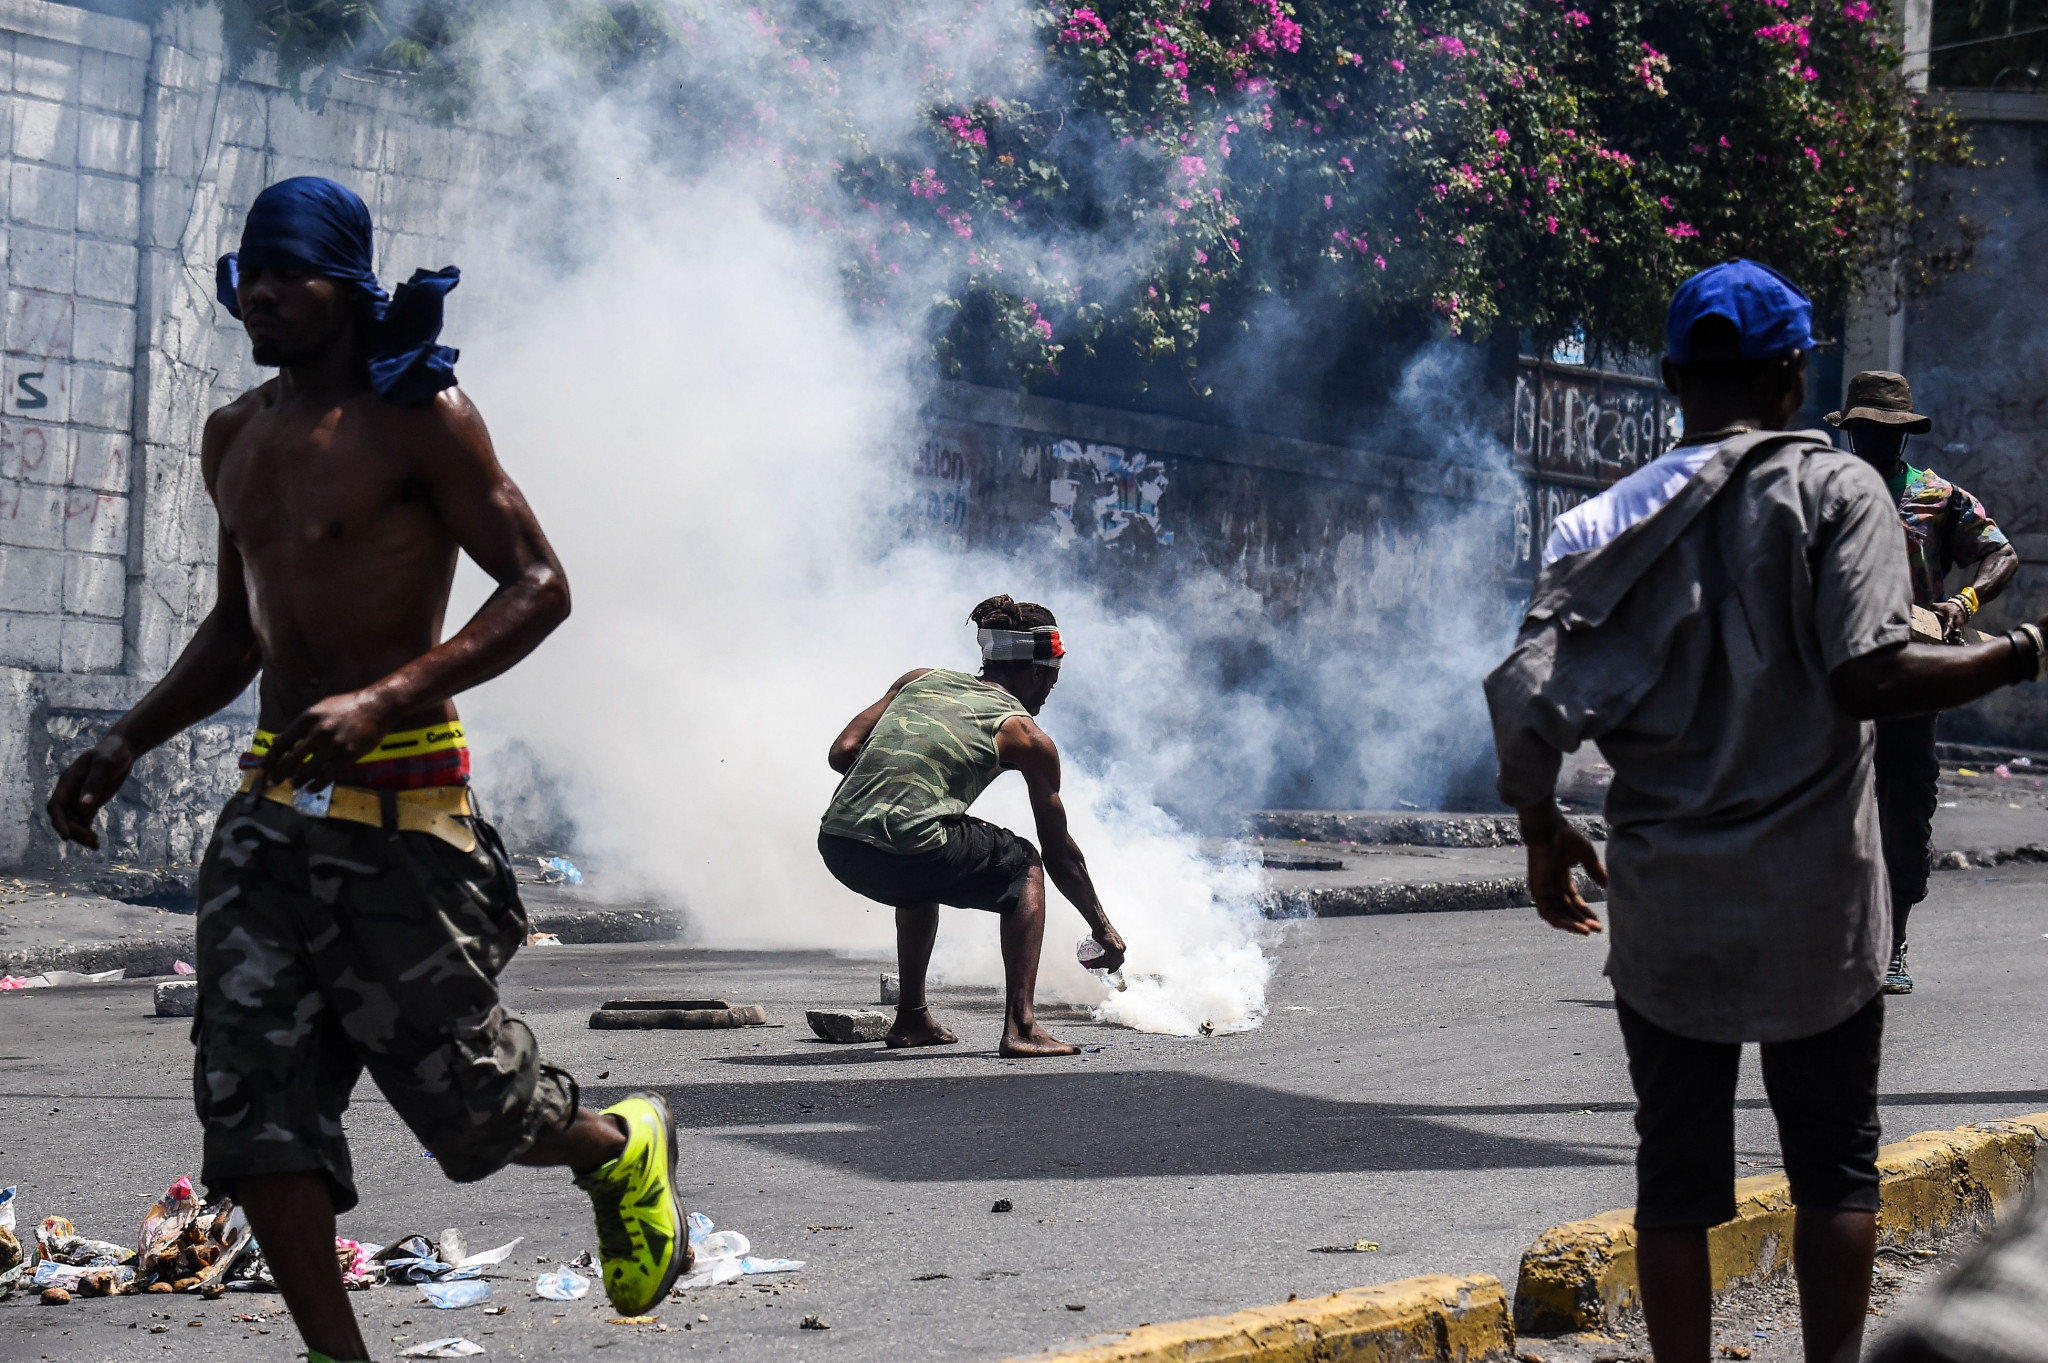 Anti-government protesters have demanded the resignation of President Jovenel Moise in Haiti ©Getty Images